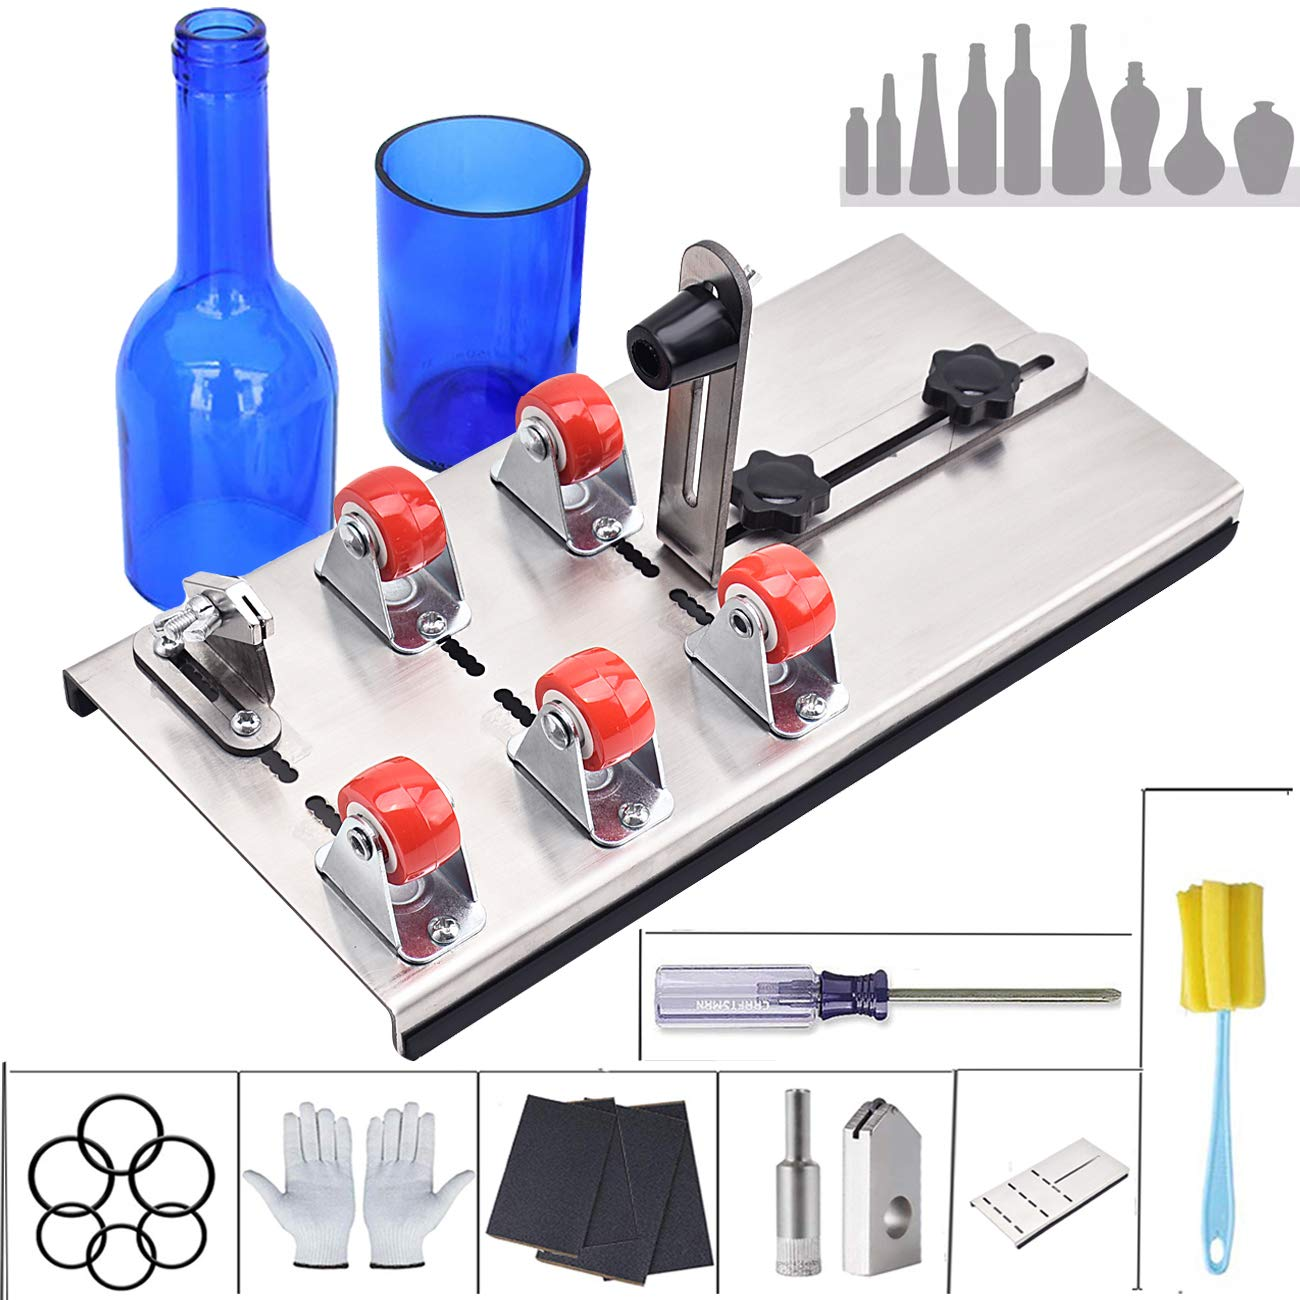 Bottle Cutter/Glass Bottles Cutter Bundle/Glass Cutting Tool kit/Glass Cutter Machine, 9 Pcs DIY Glass Bottle Crafts Production Cutting Set (arc/Oval/Round, Cut Bottle from Neck to Bottom) by Hotnew tools